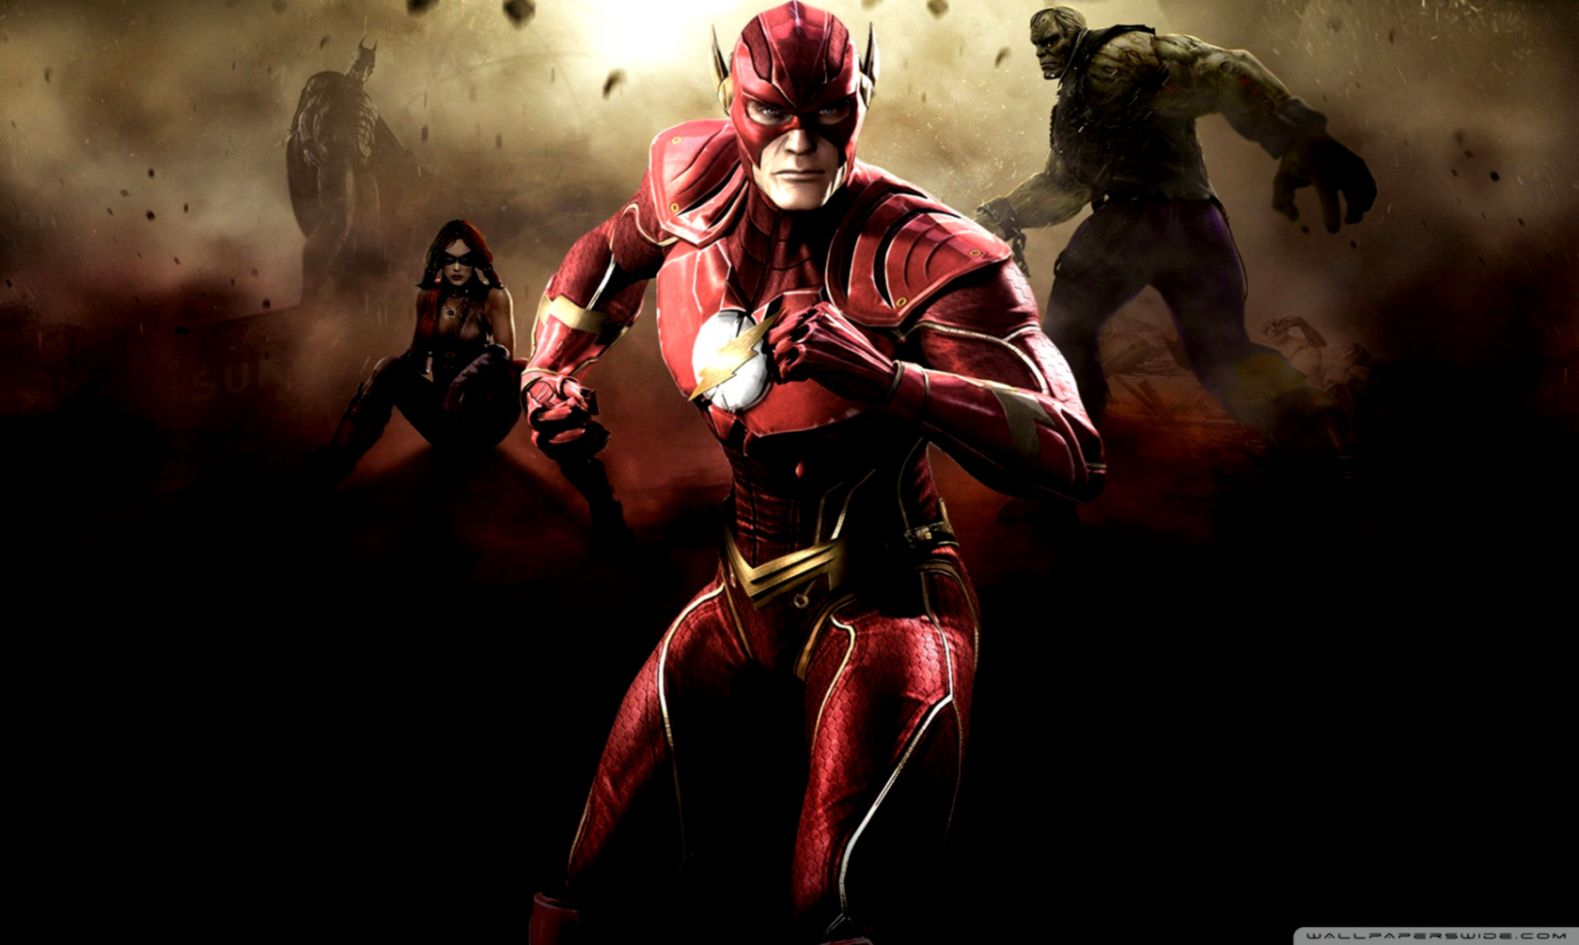 Injustice Gods Among Us The Flash Artwork Wallpapers Wallpapers